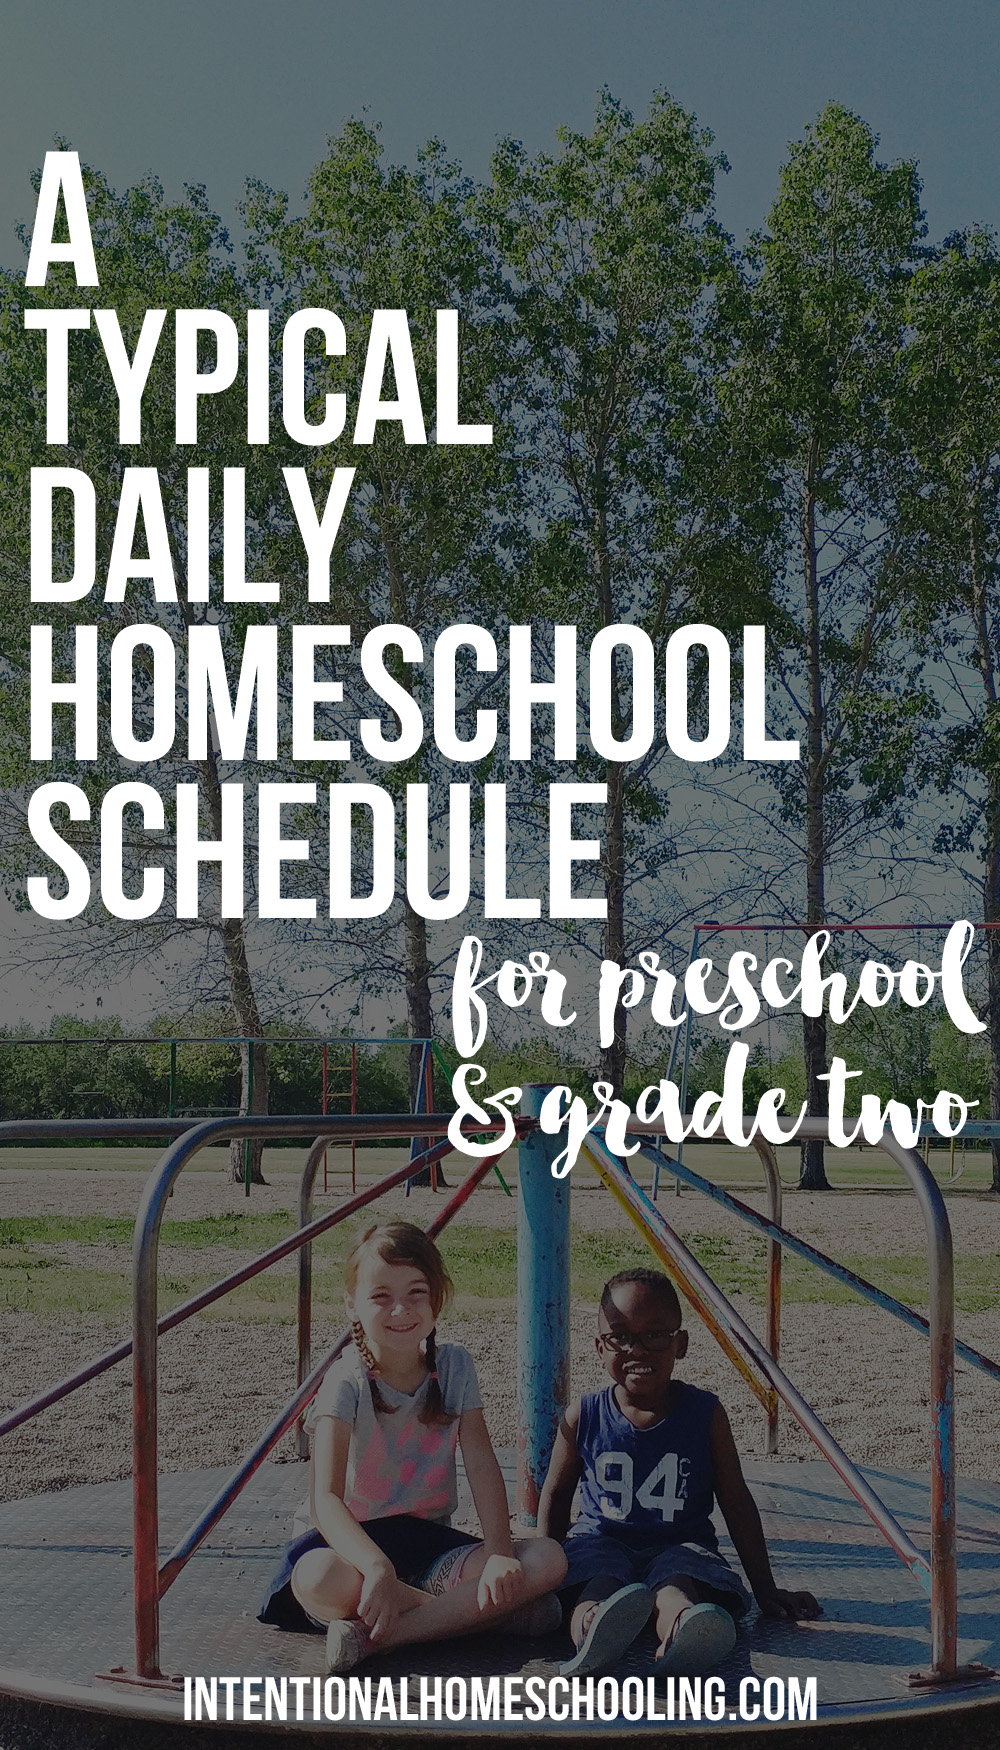 Our Typical Daily Homeschool Schedule and Routine - for preschool (pre-kindergarten) and grade two with lots of free play!